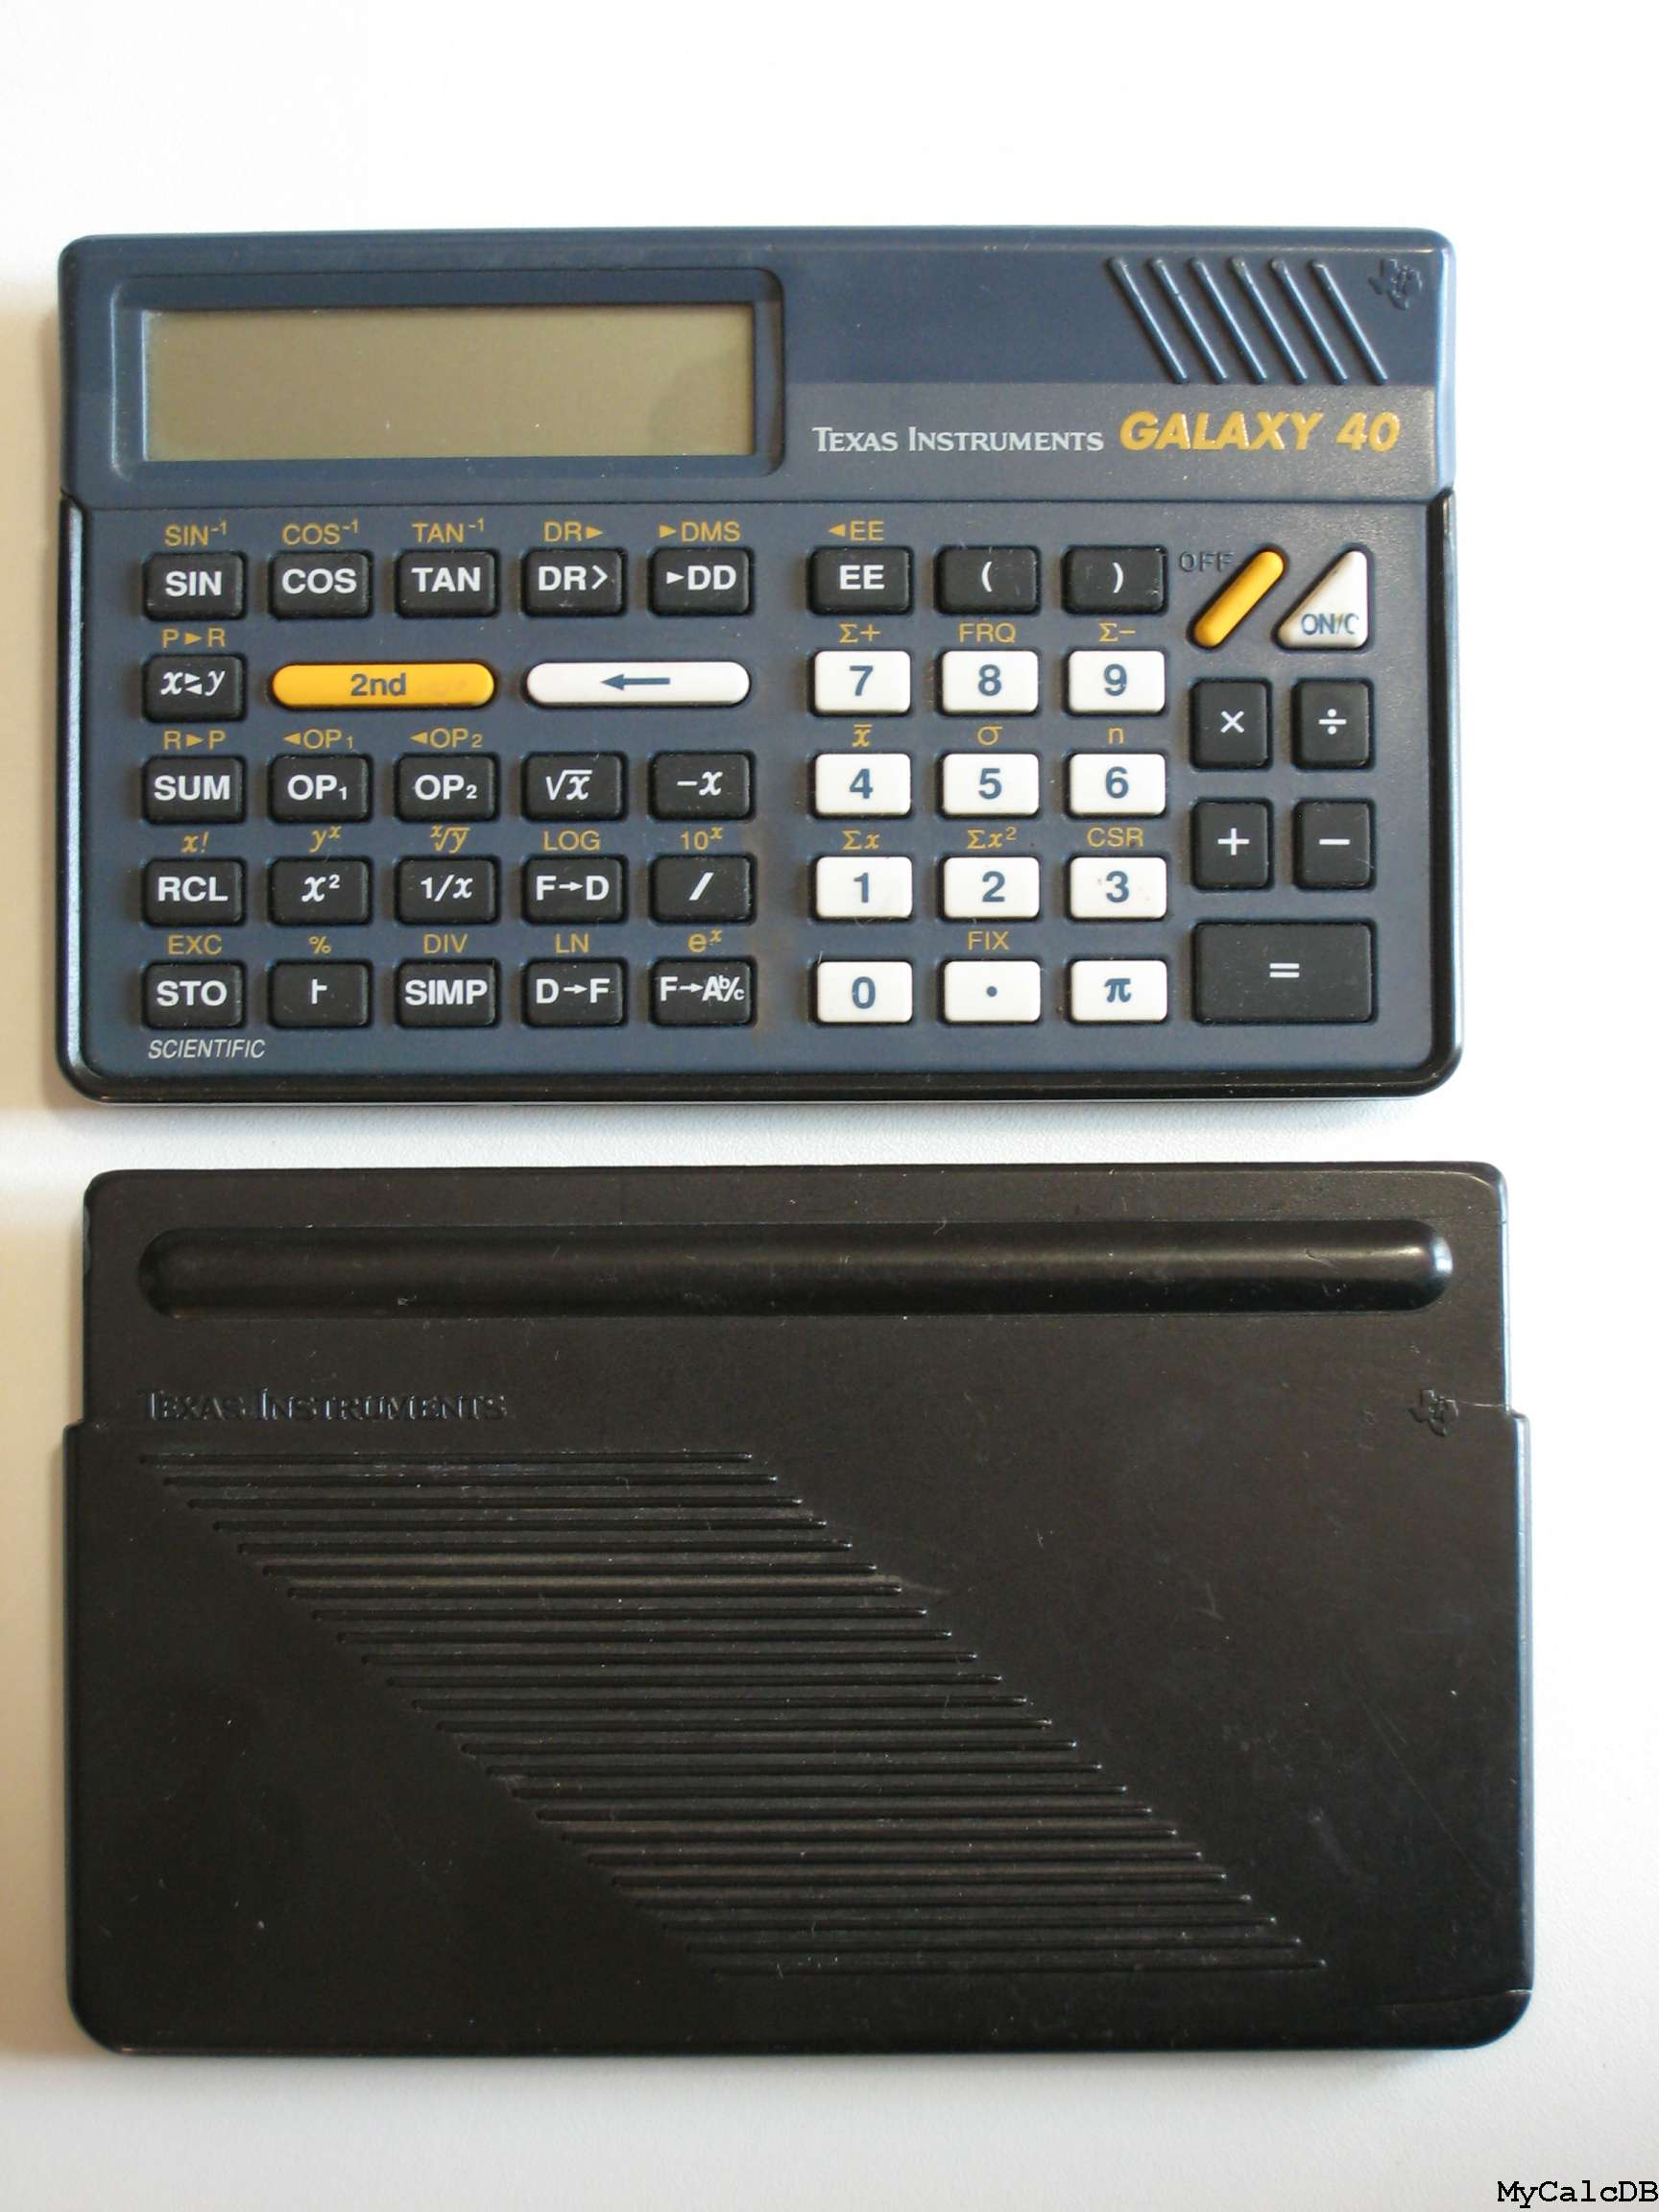 Texas Instruments GALAXY 40